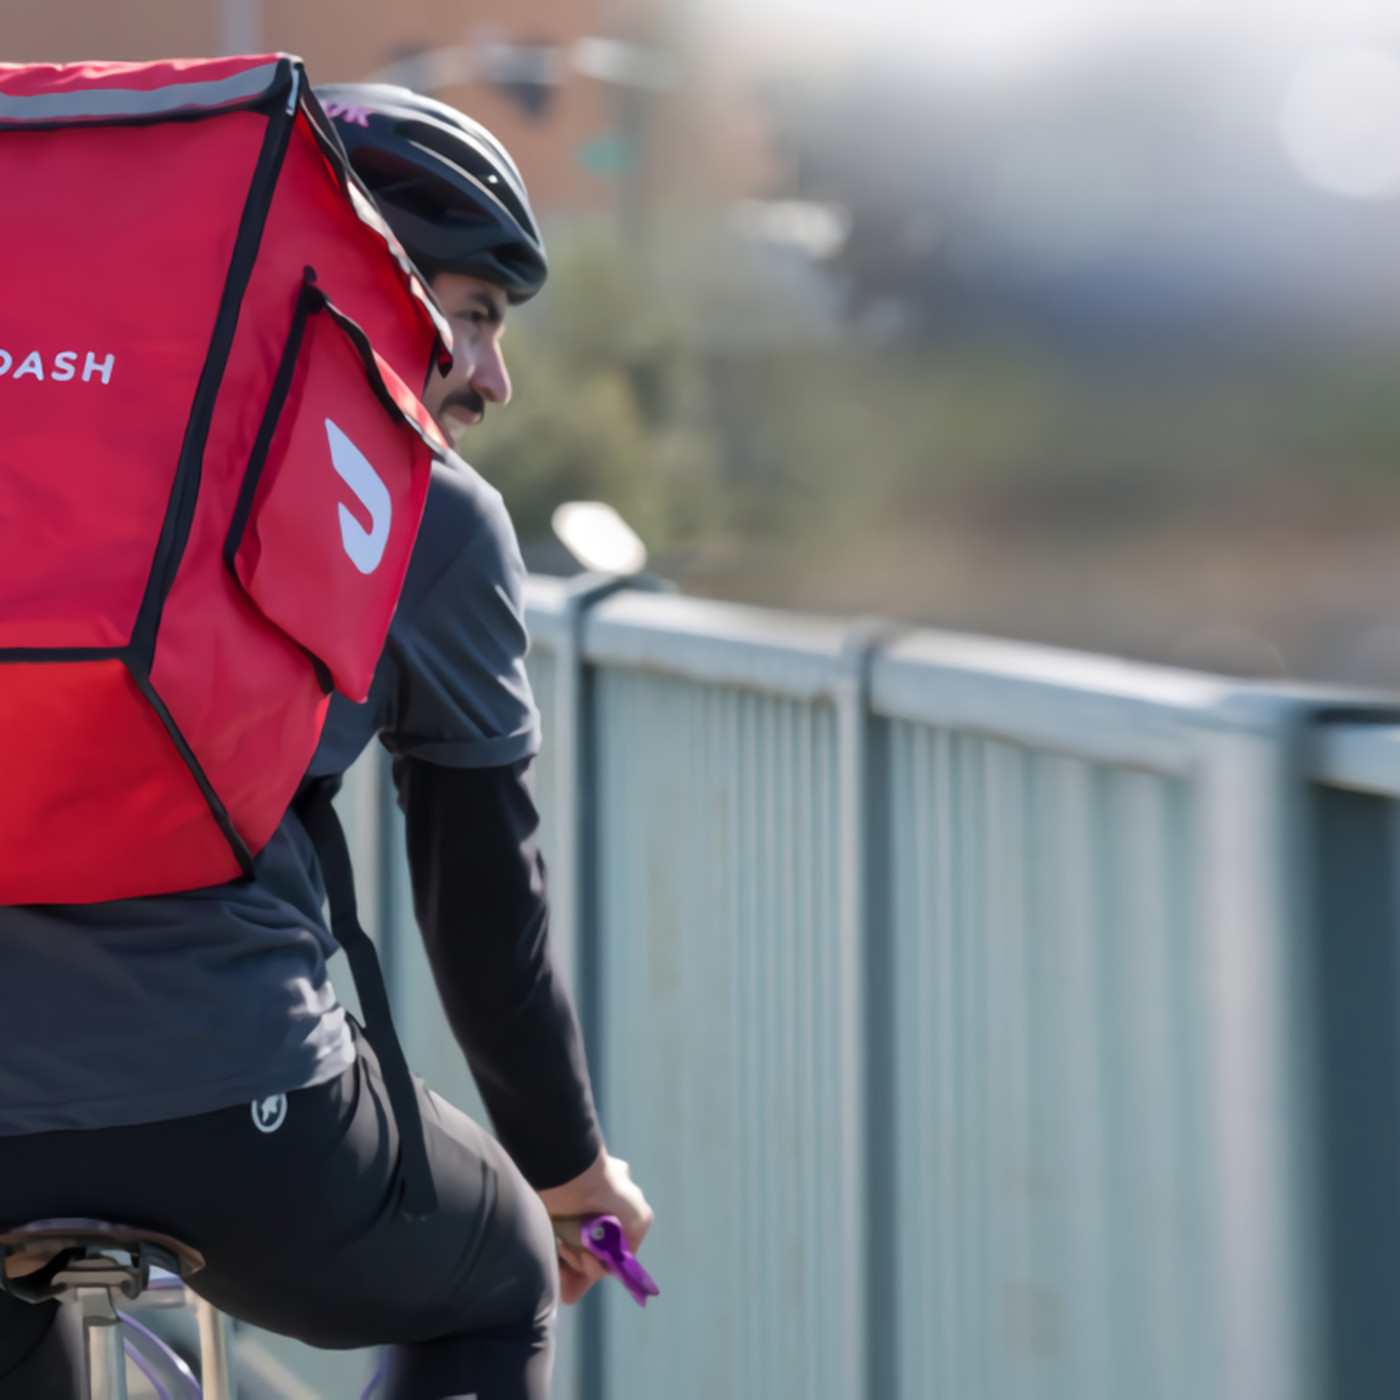 Delivery apps like DoorDash are using your tips to pay